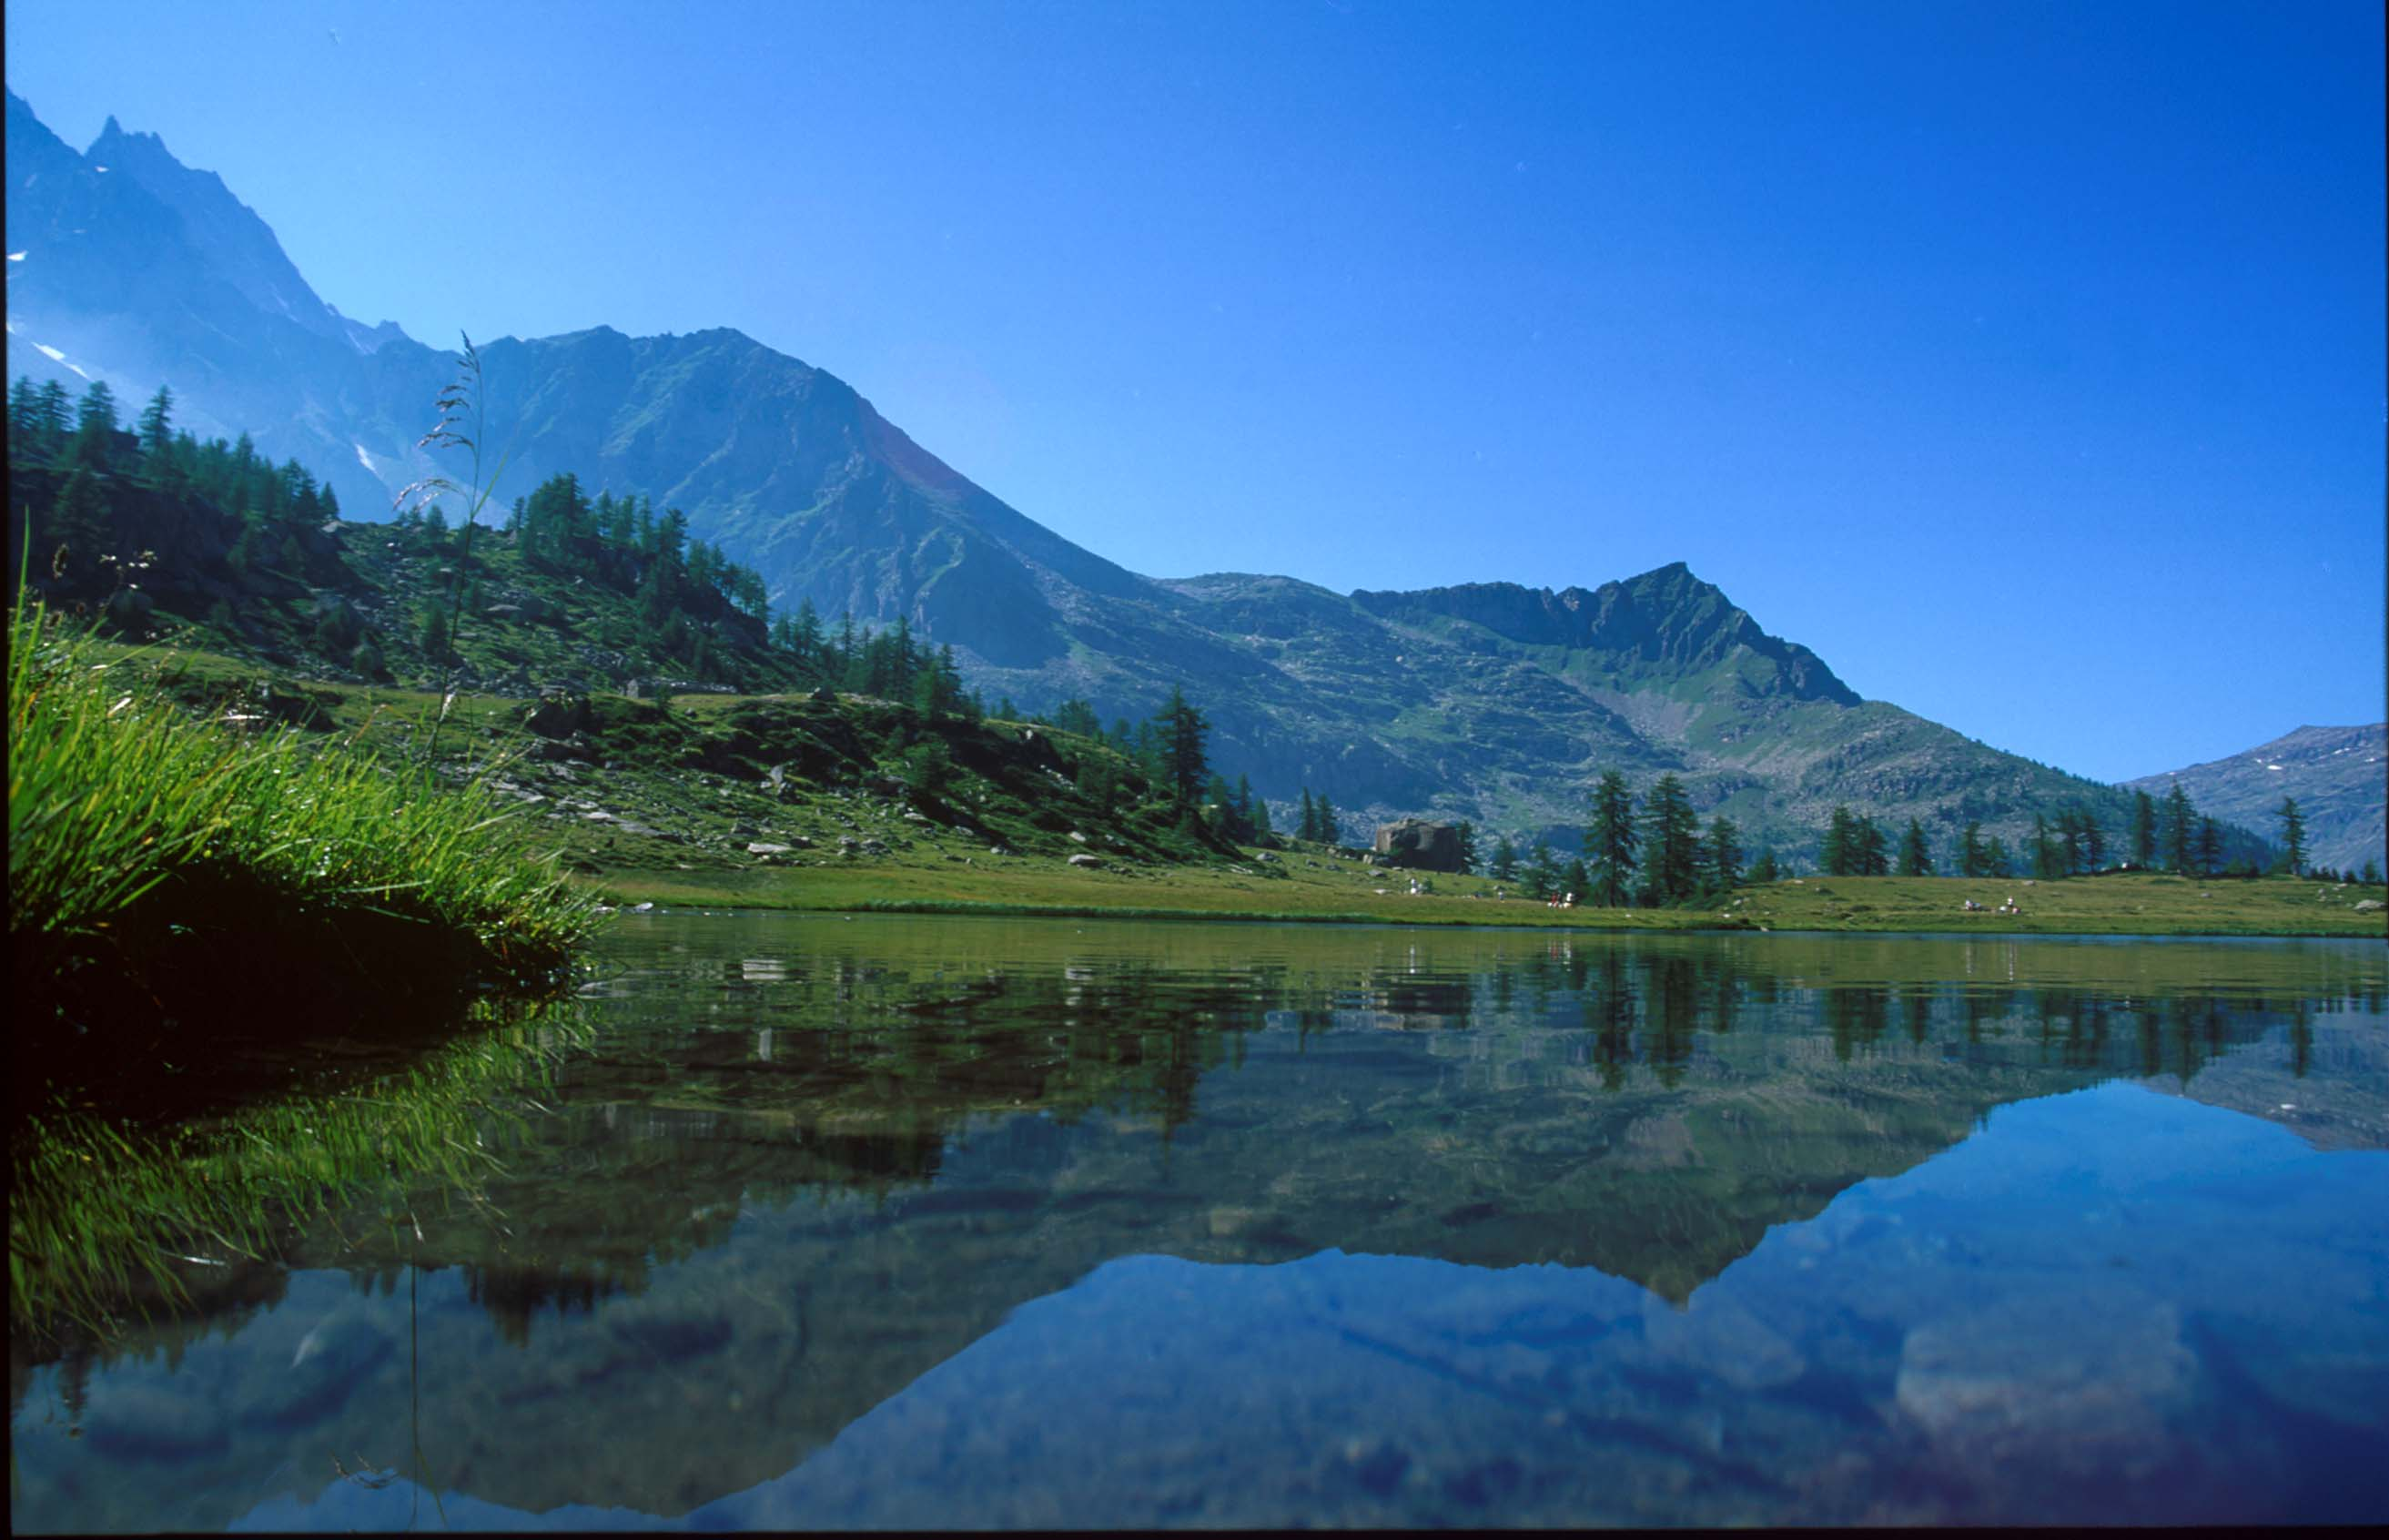 images/Gran_Paradiso/lago-di-dress-valle-orco.jpg